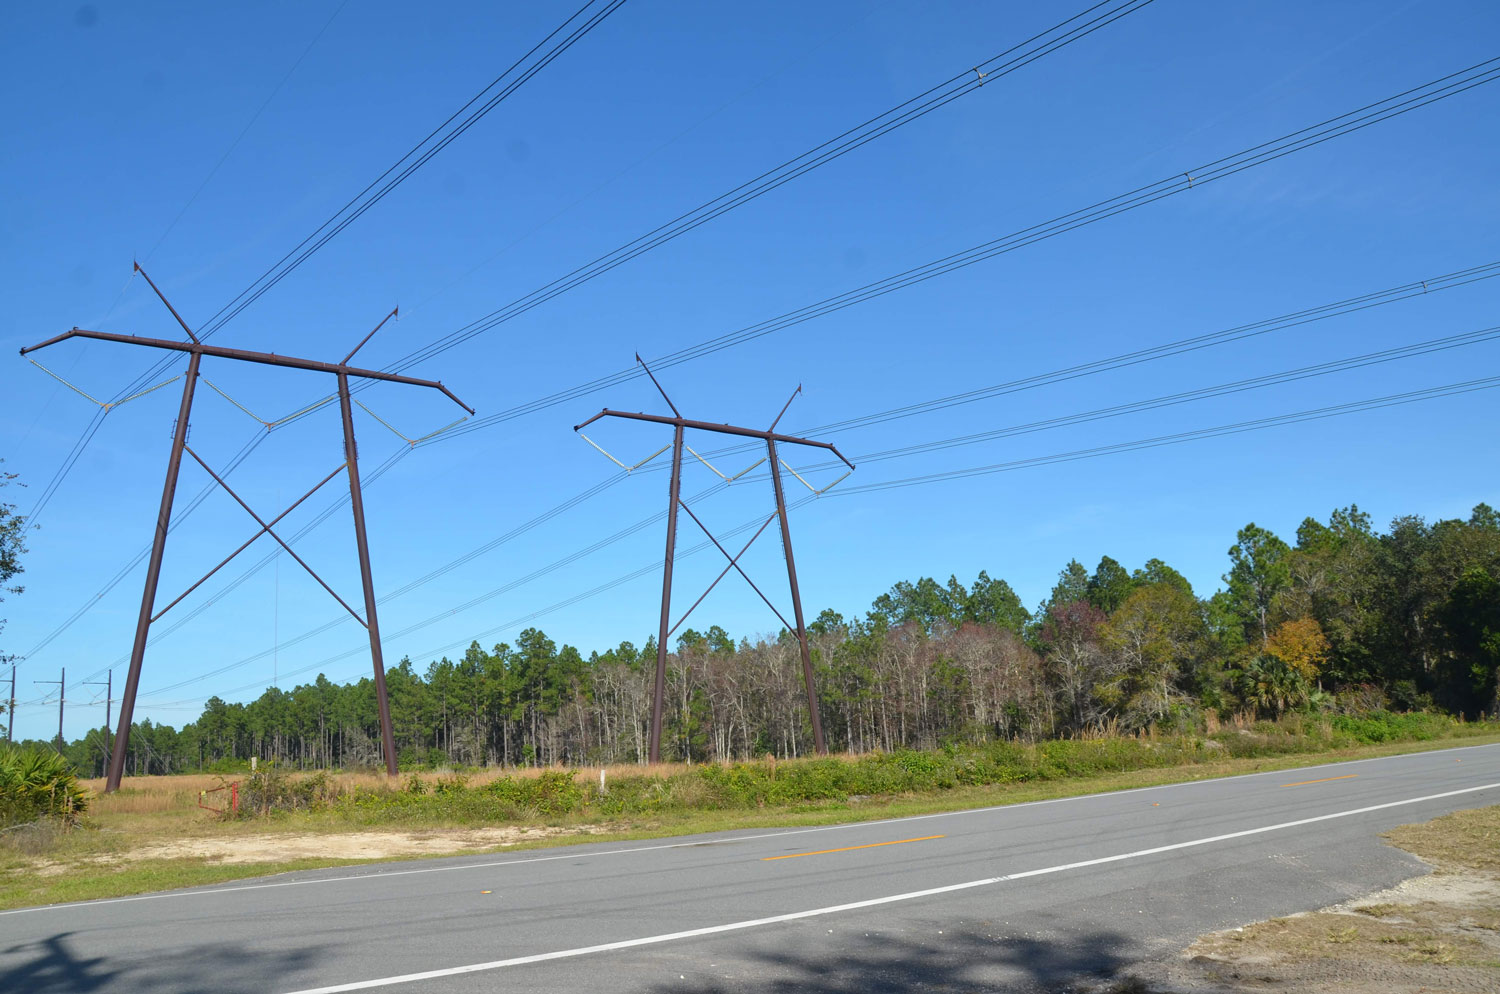 Khawja flew below these power lines. (© FlaglerLive)